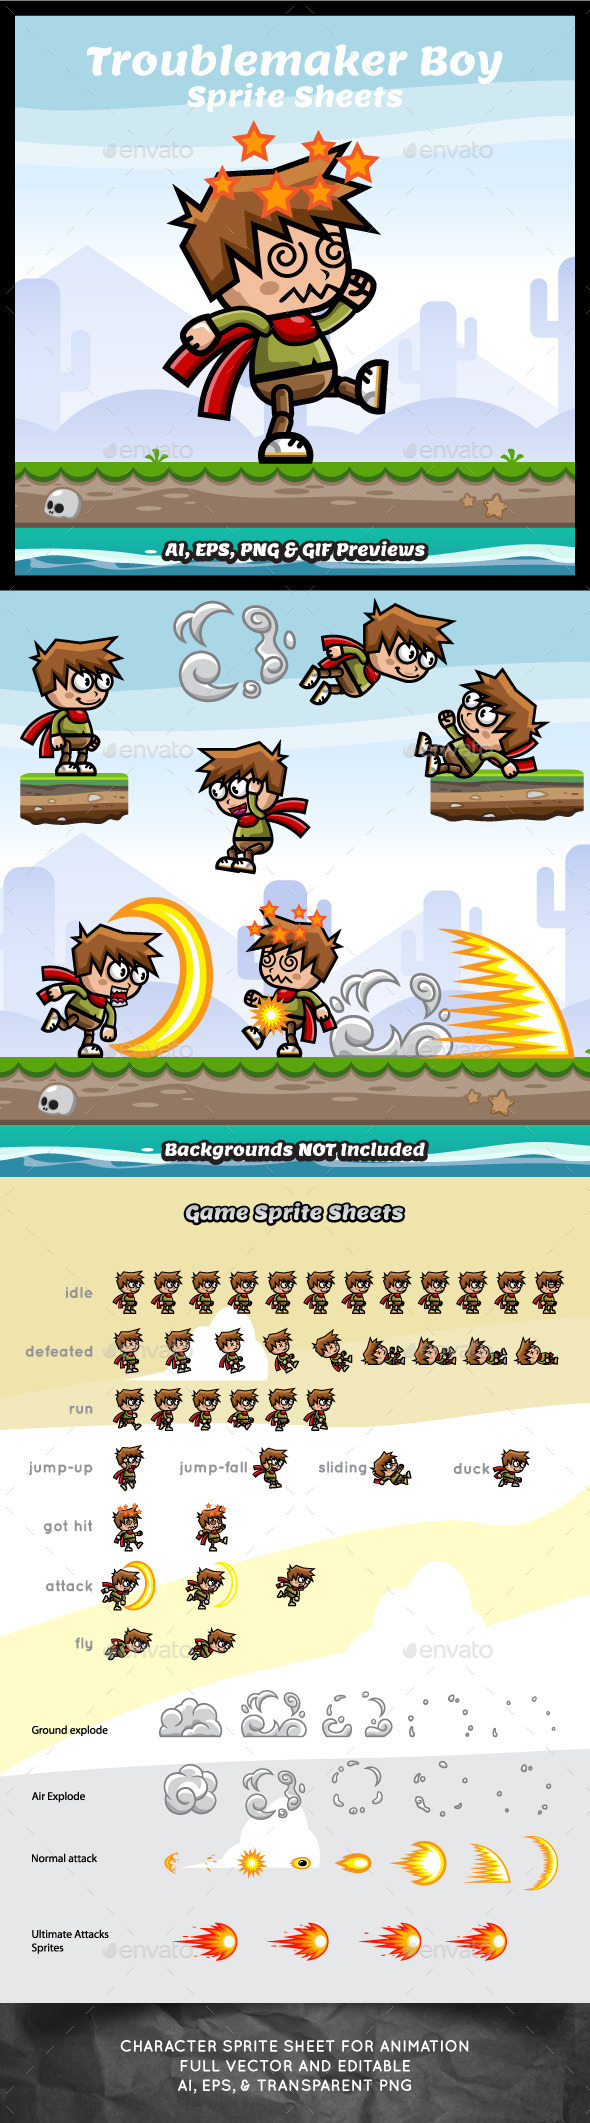 GraphicRiver Troublemaker Boy Game Asset Sprite Sheets 9290884